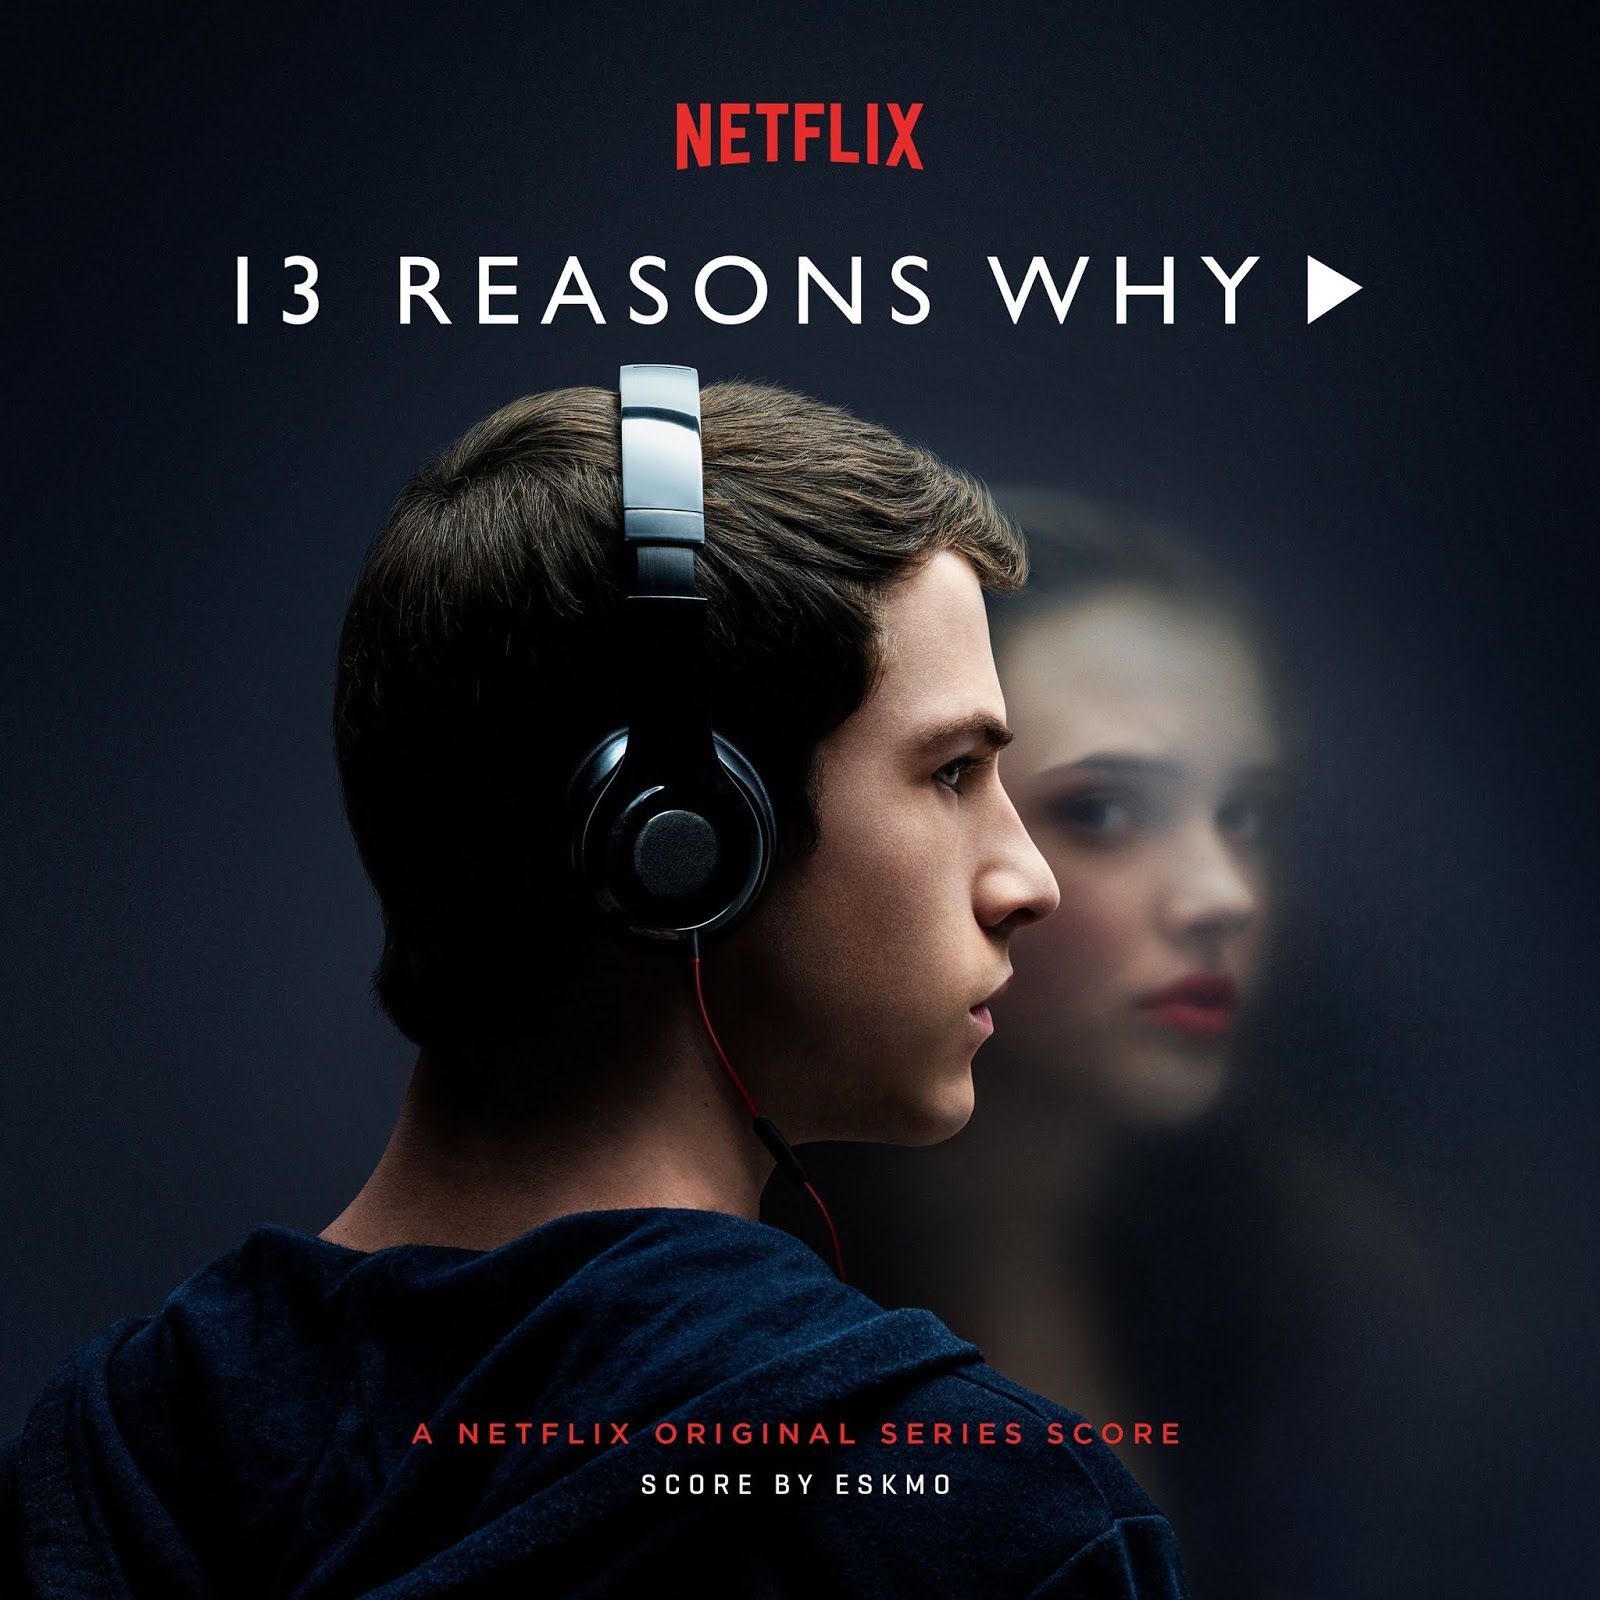 13 Reasons Why, Covers, Dylan Minnette, Clay Jensen, Katherine Langford, TV Series